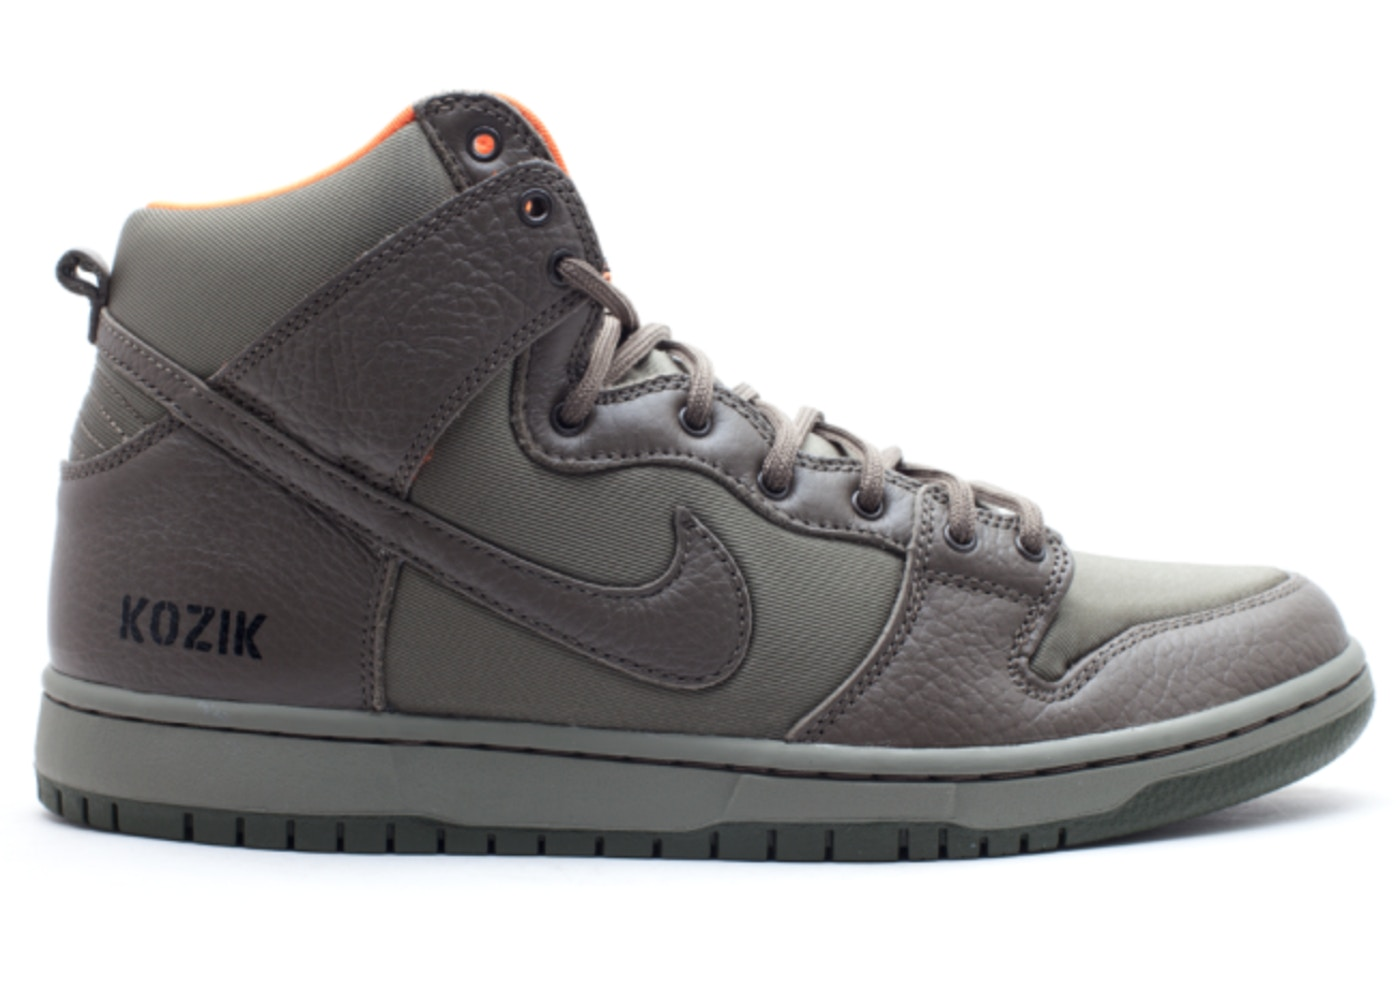 ナイキ NIKE ダンク エスビー ハイ スニーカー 【 SB DUNK HIGH FRANK KOZIK STEEL GREEN OLIVE KHAKISAFETY ORANGE 】 メンズ